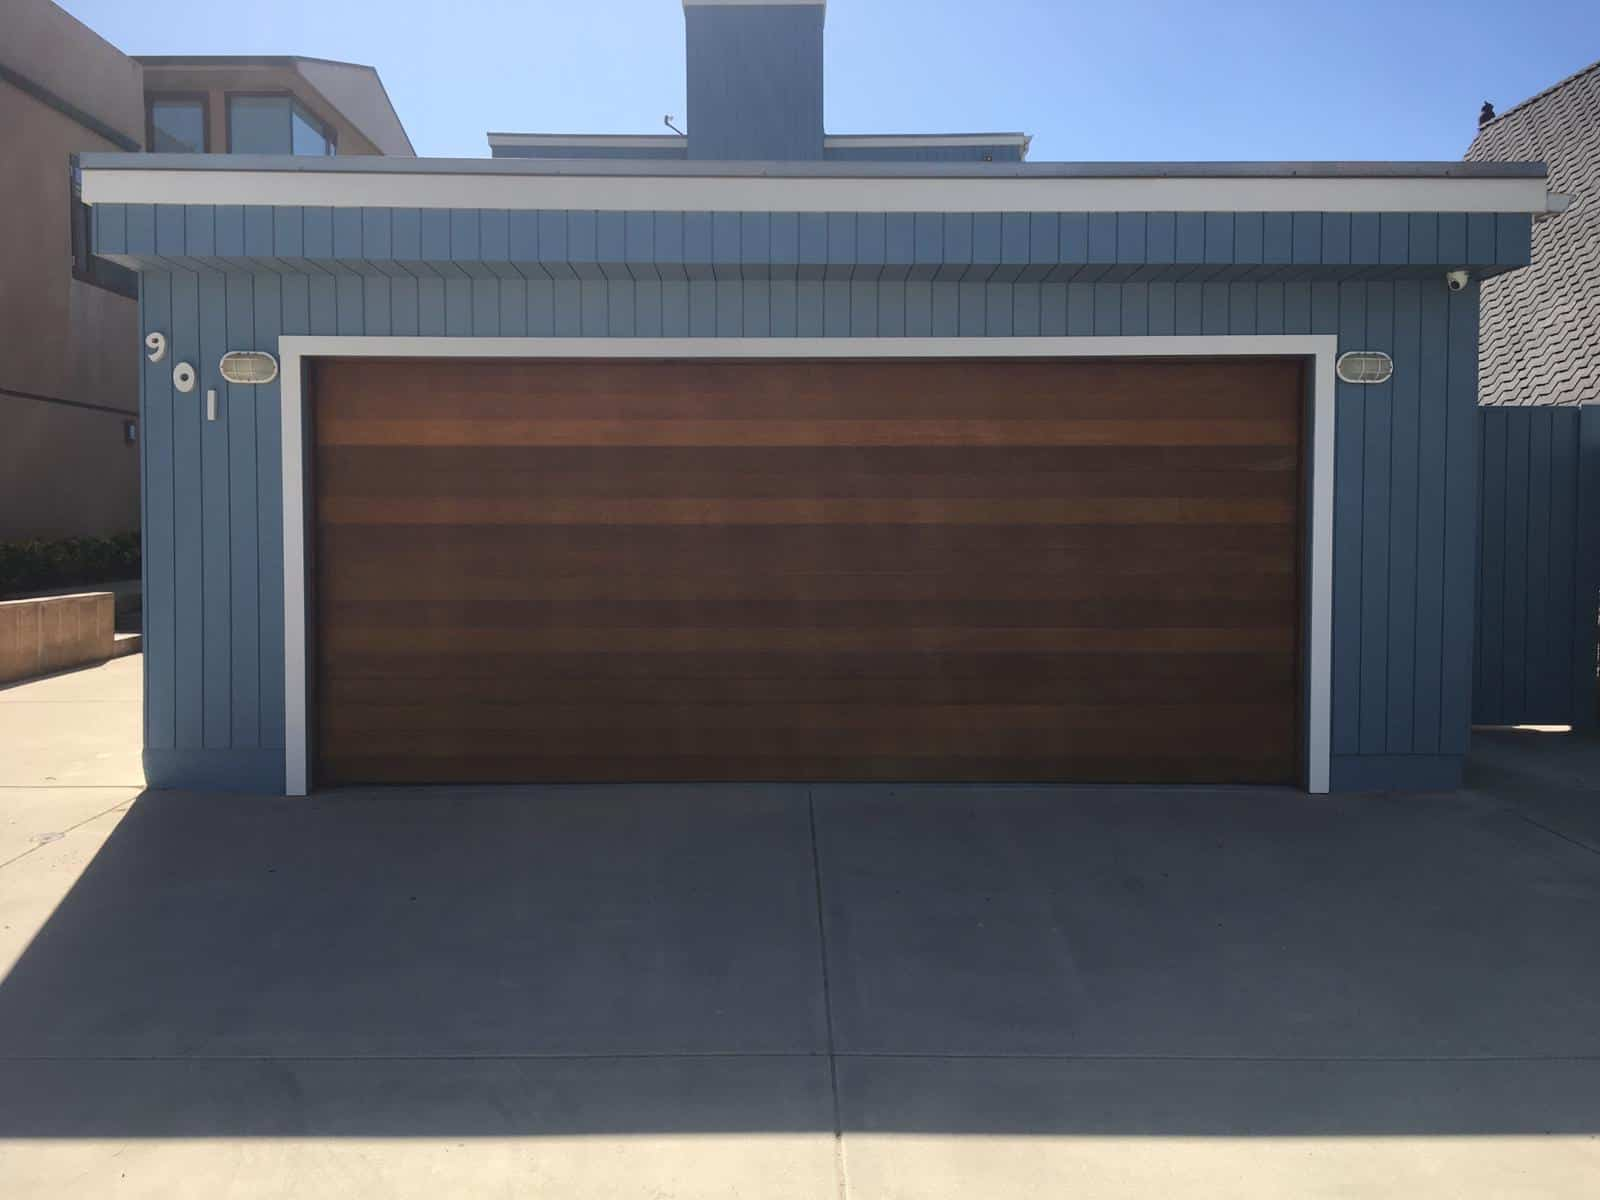 Fiddletown Garage door repair and replacement